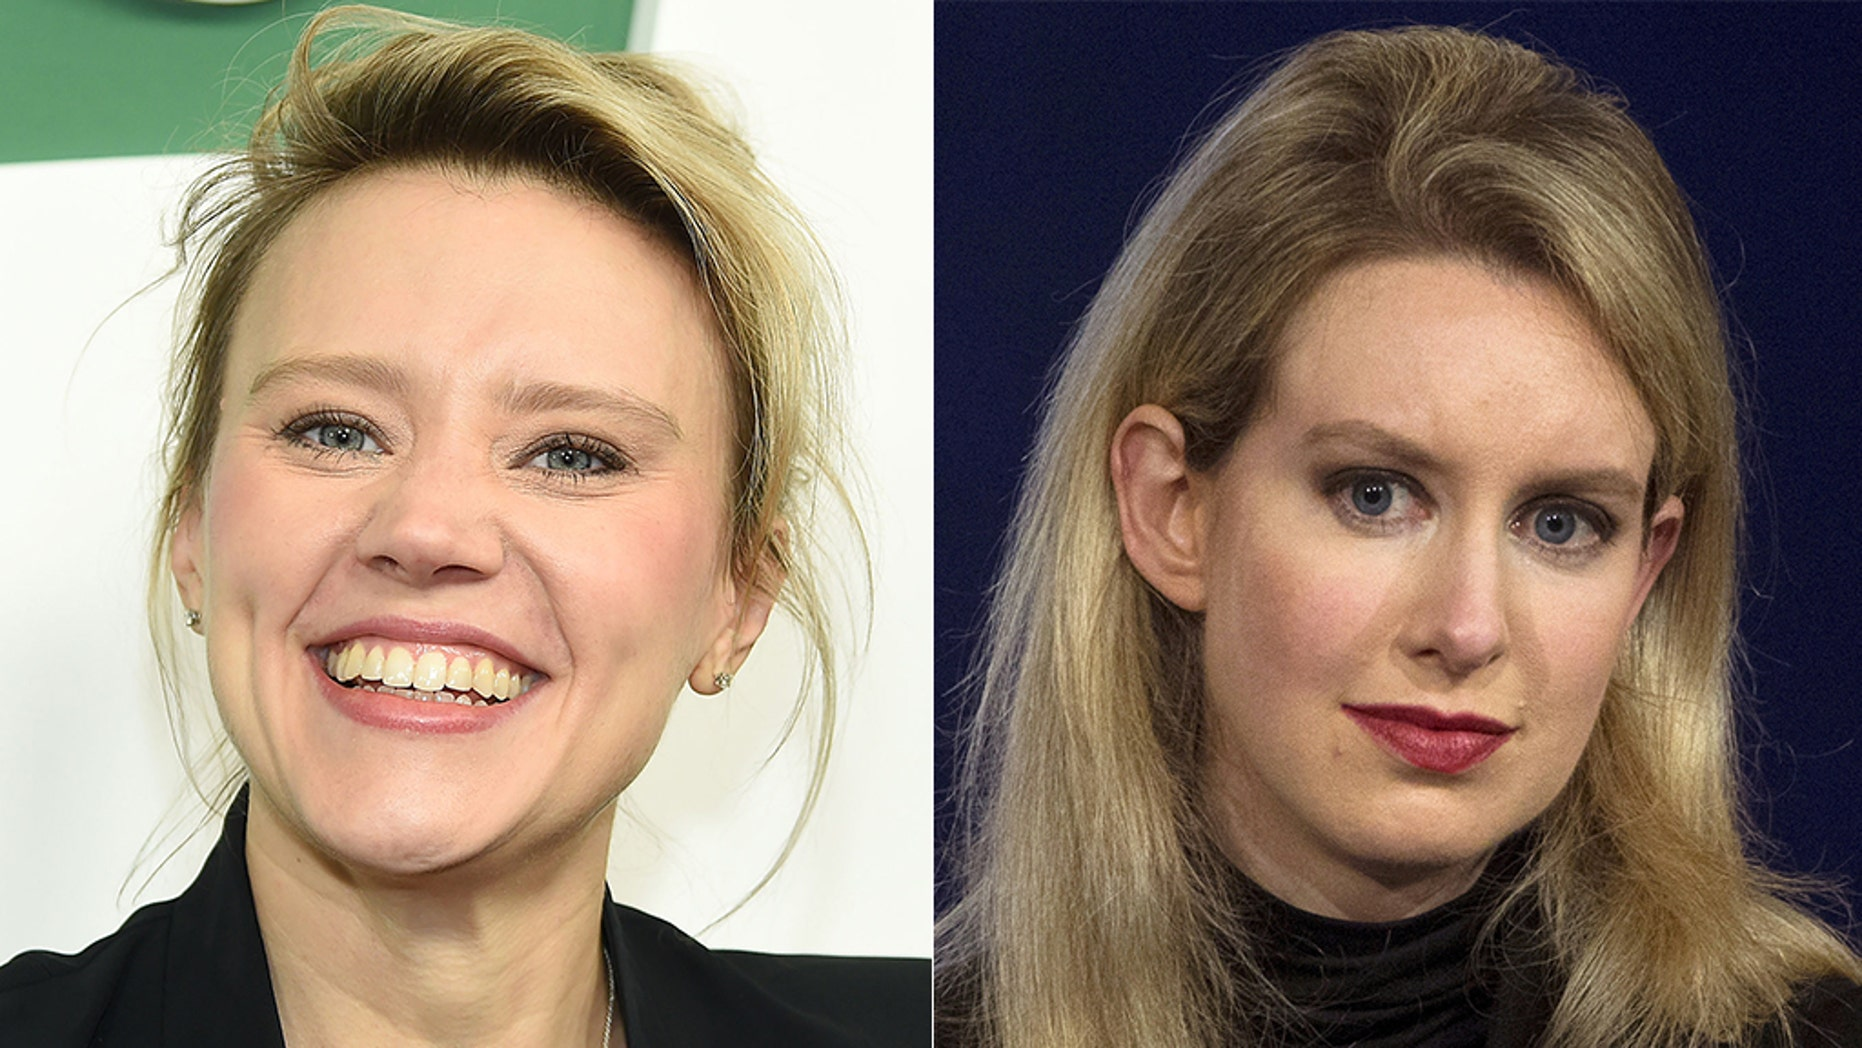 Kate McKinnon to star as Elizabeth Holmes in limited series for Hulu